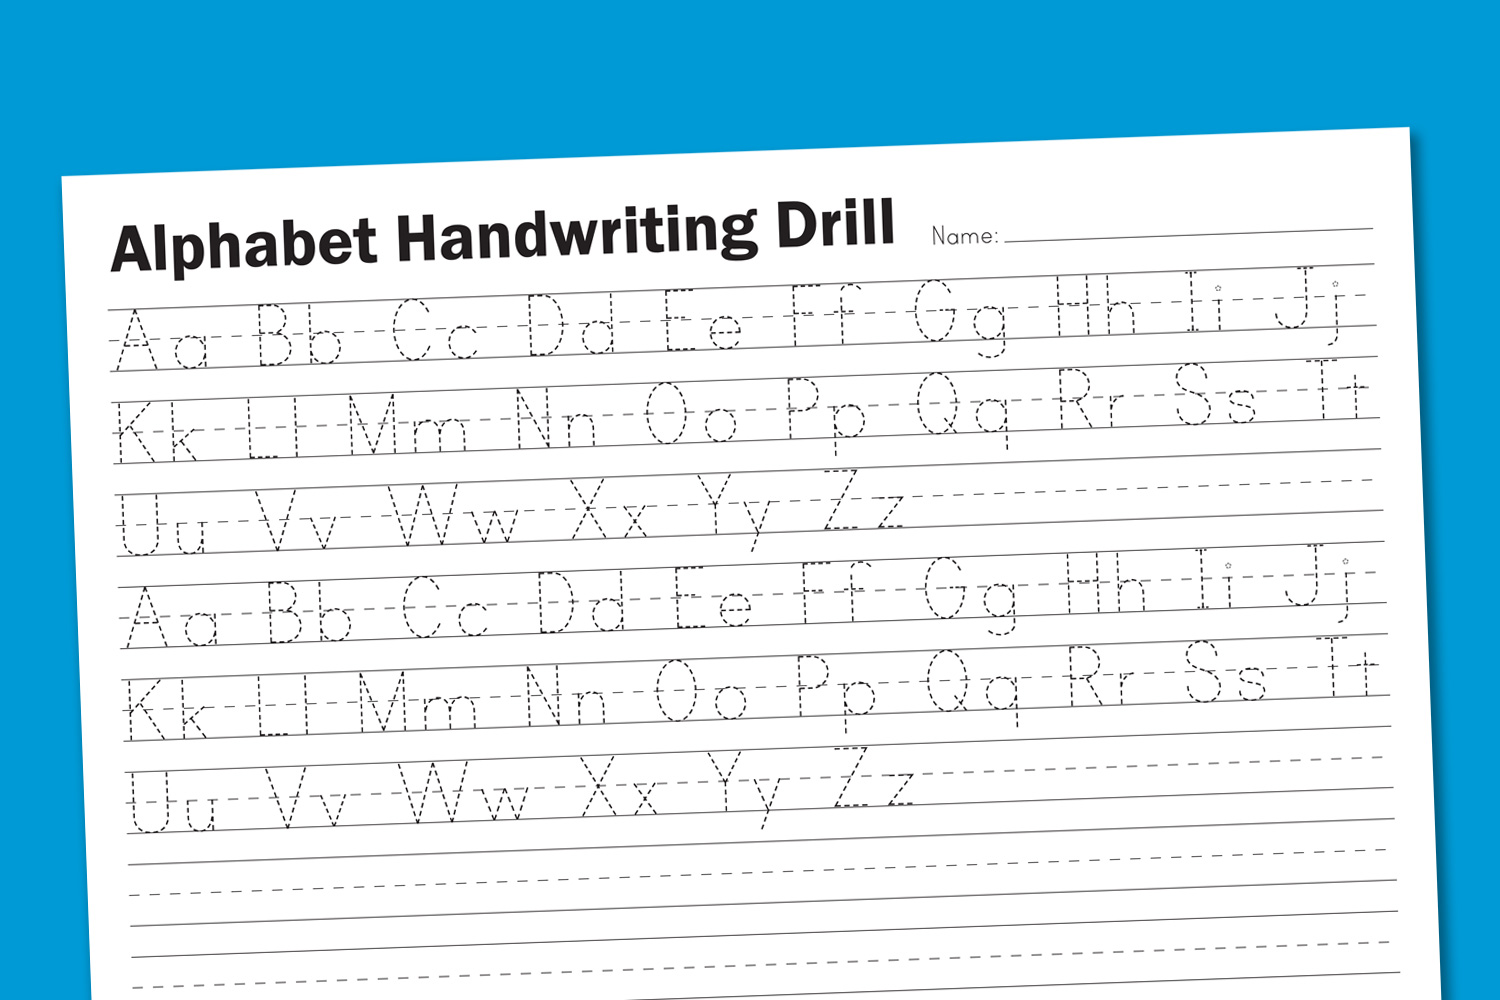 Best Images of Free Printable Alphabet Handwriting Worksheets ...